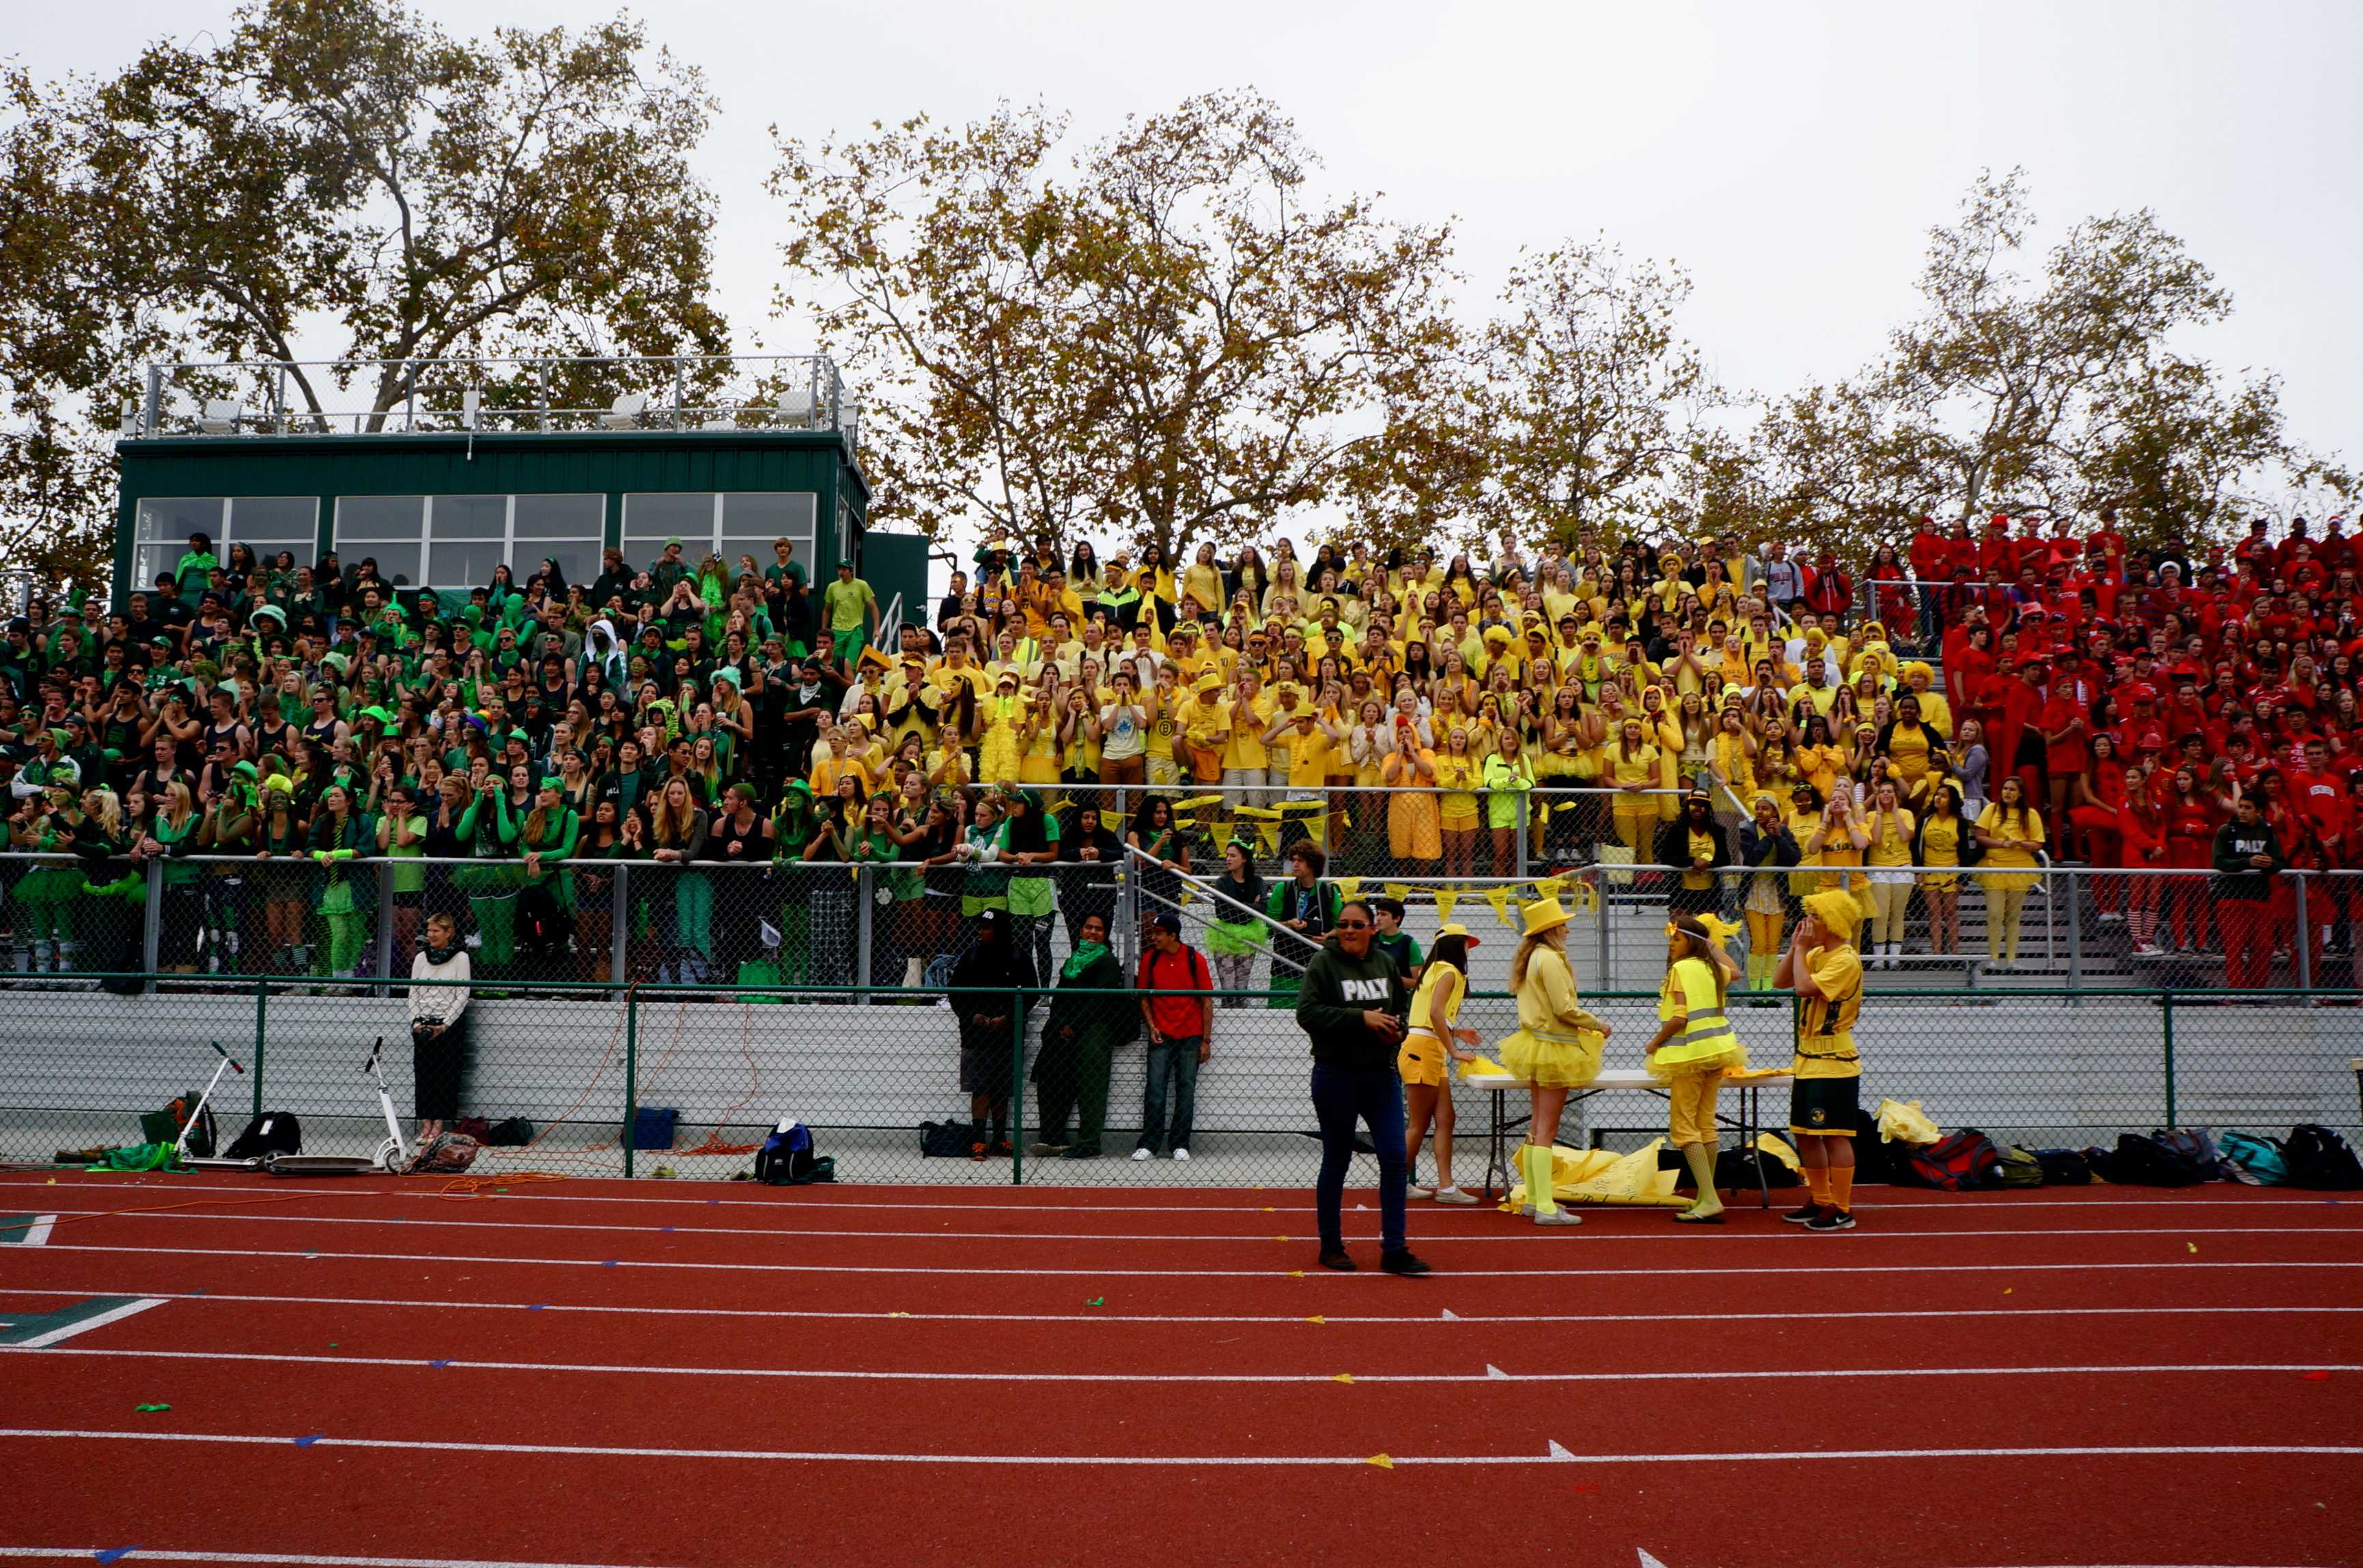 The sophomore class proudly shows off their yellow spirit color during the lunch rally. Photo by Cathy Rong.